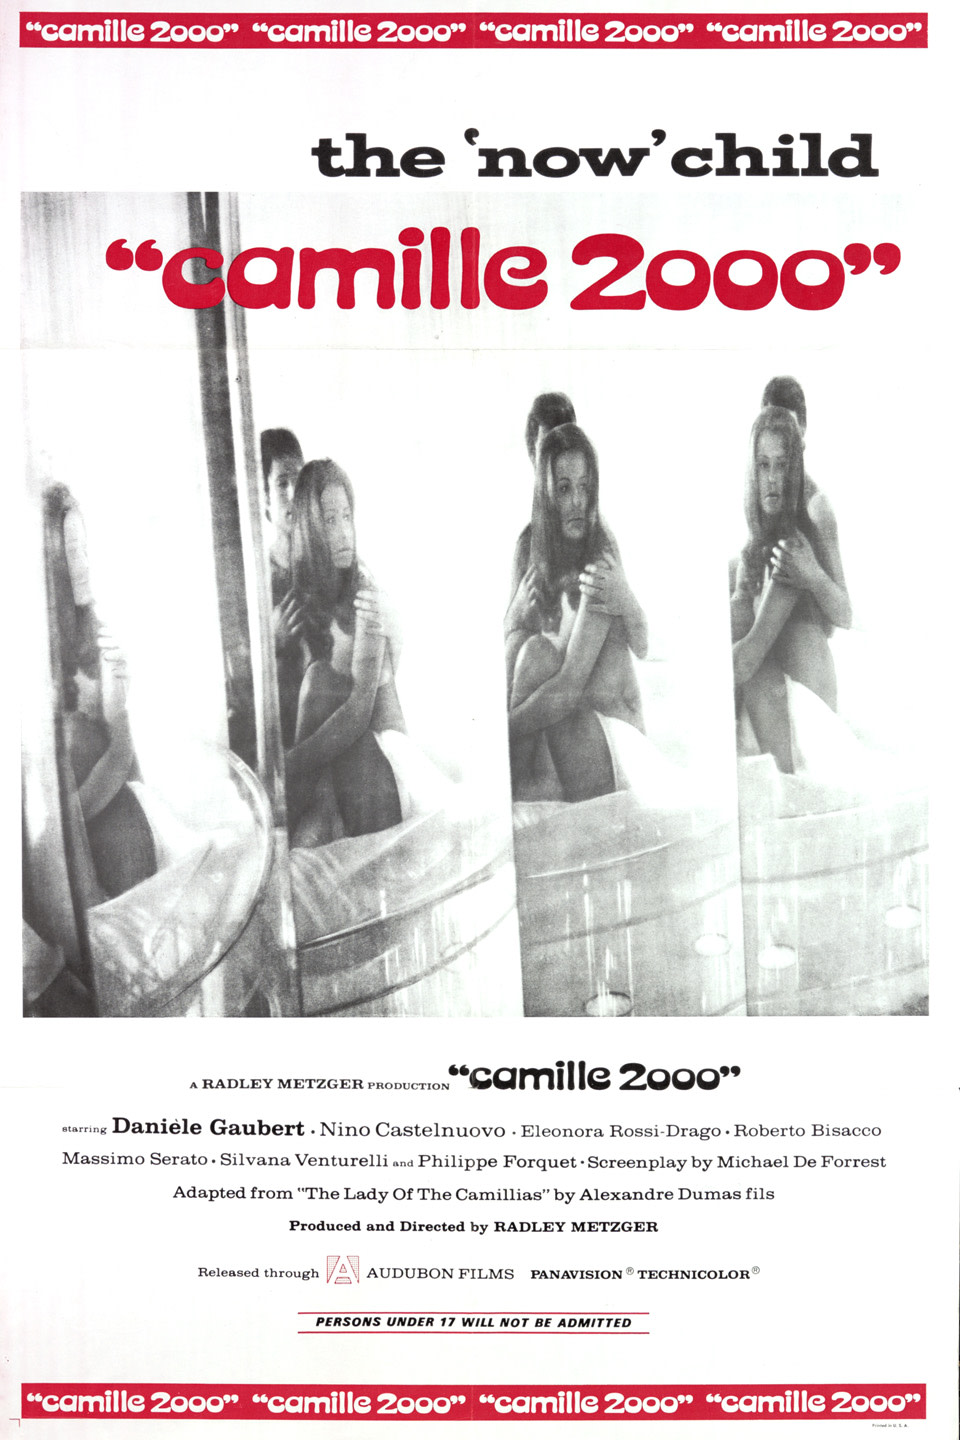 Camille2000 poster